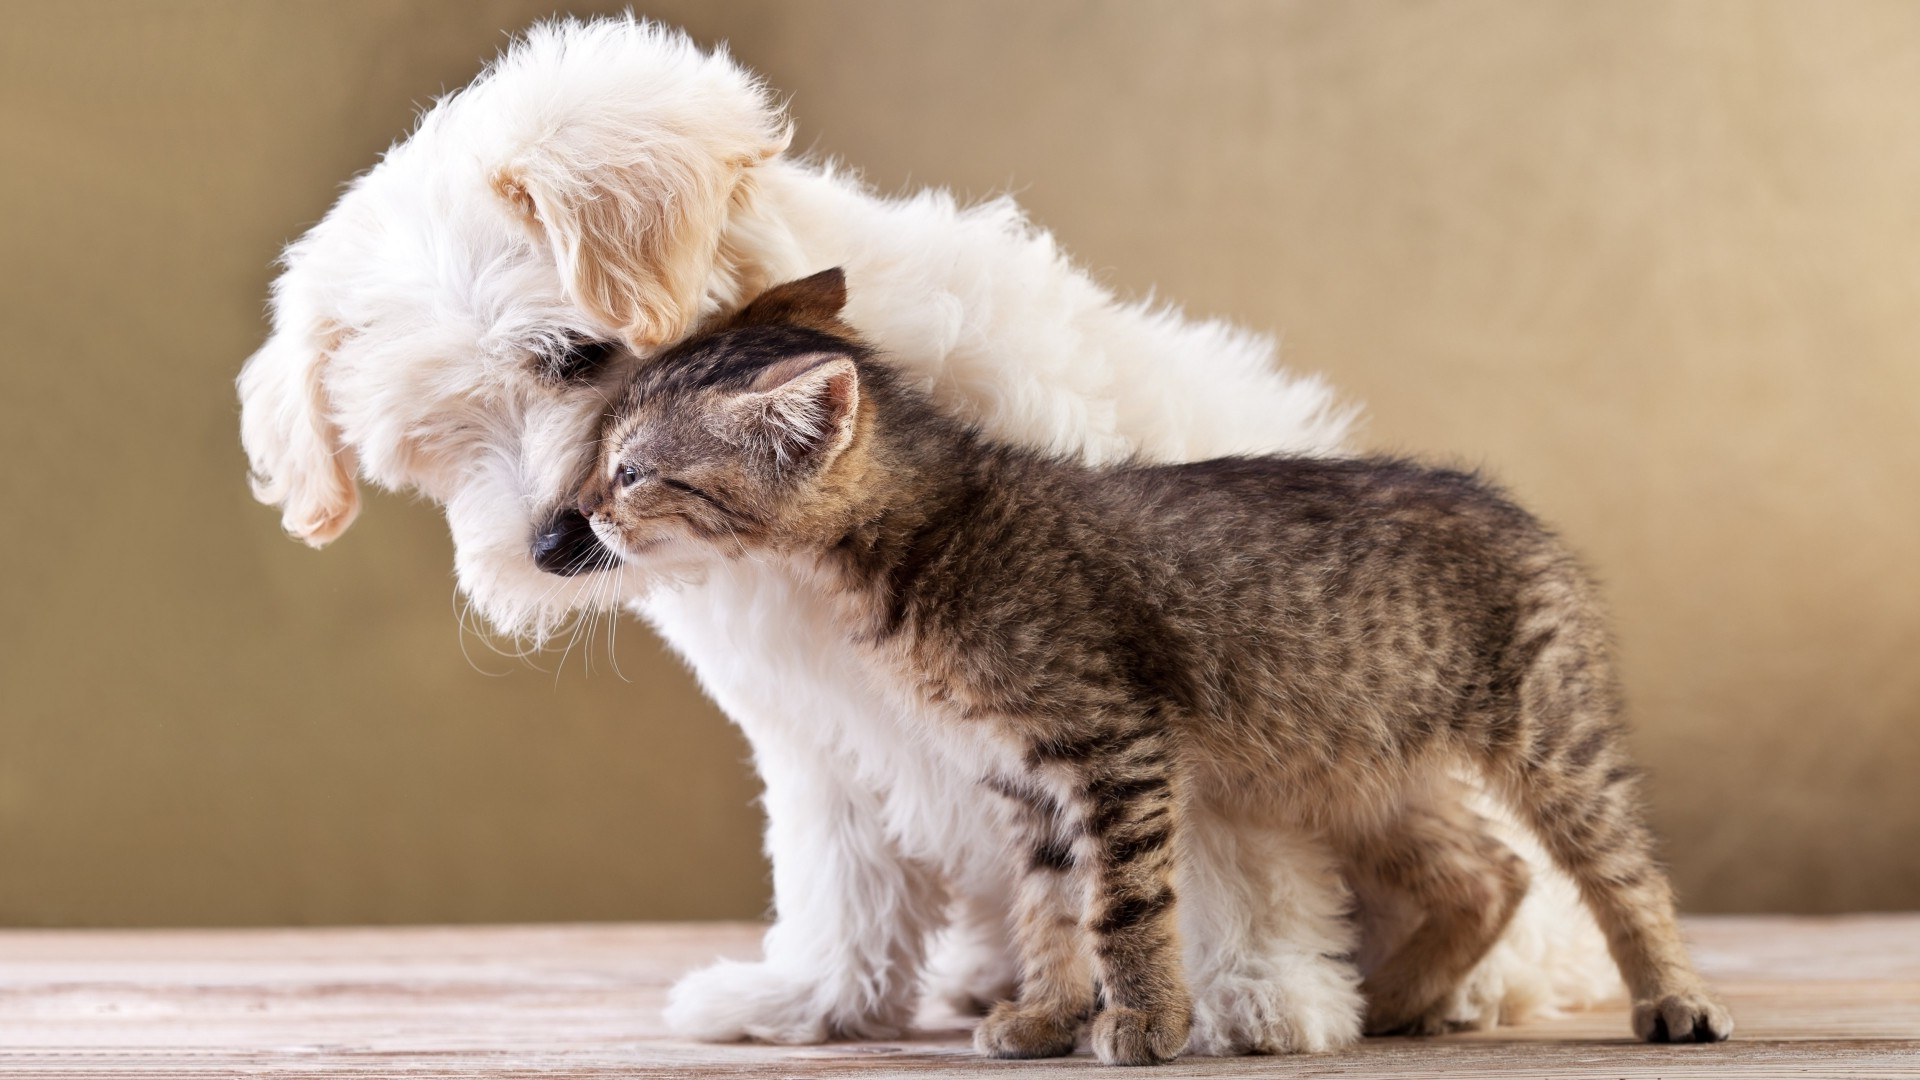 nature, animals, dog, cat, baby animals, kittens, pet, love